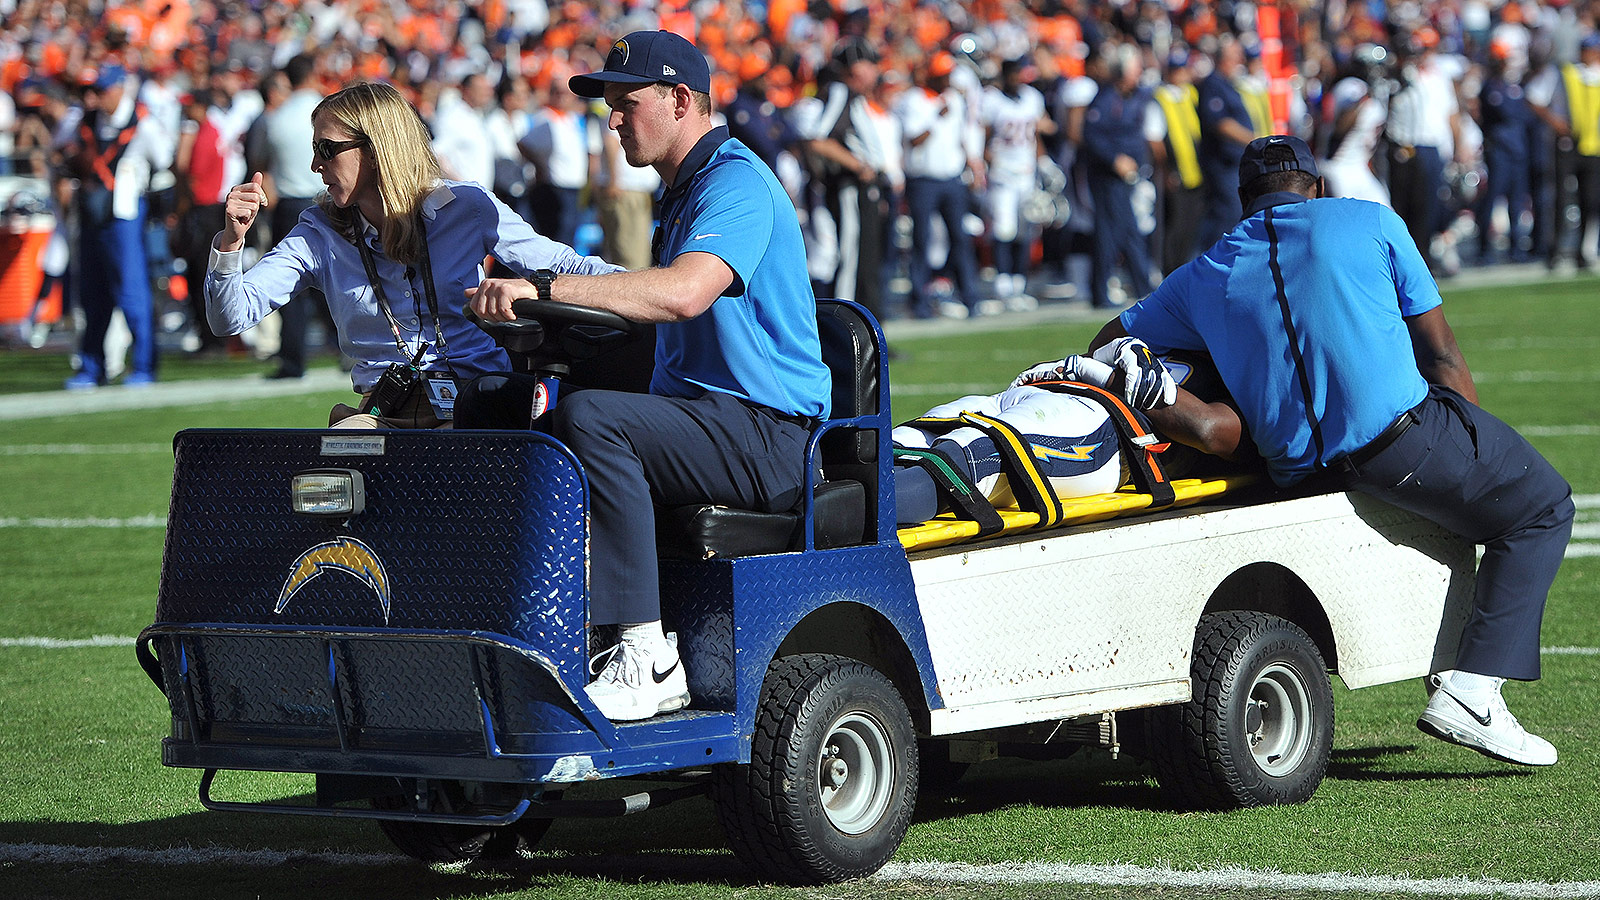 Injury roundup: Scary day in San Diego sees player carted off